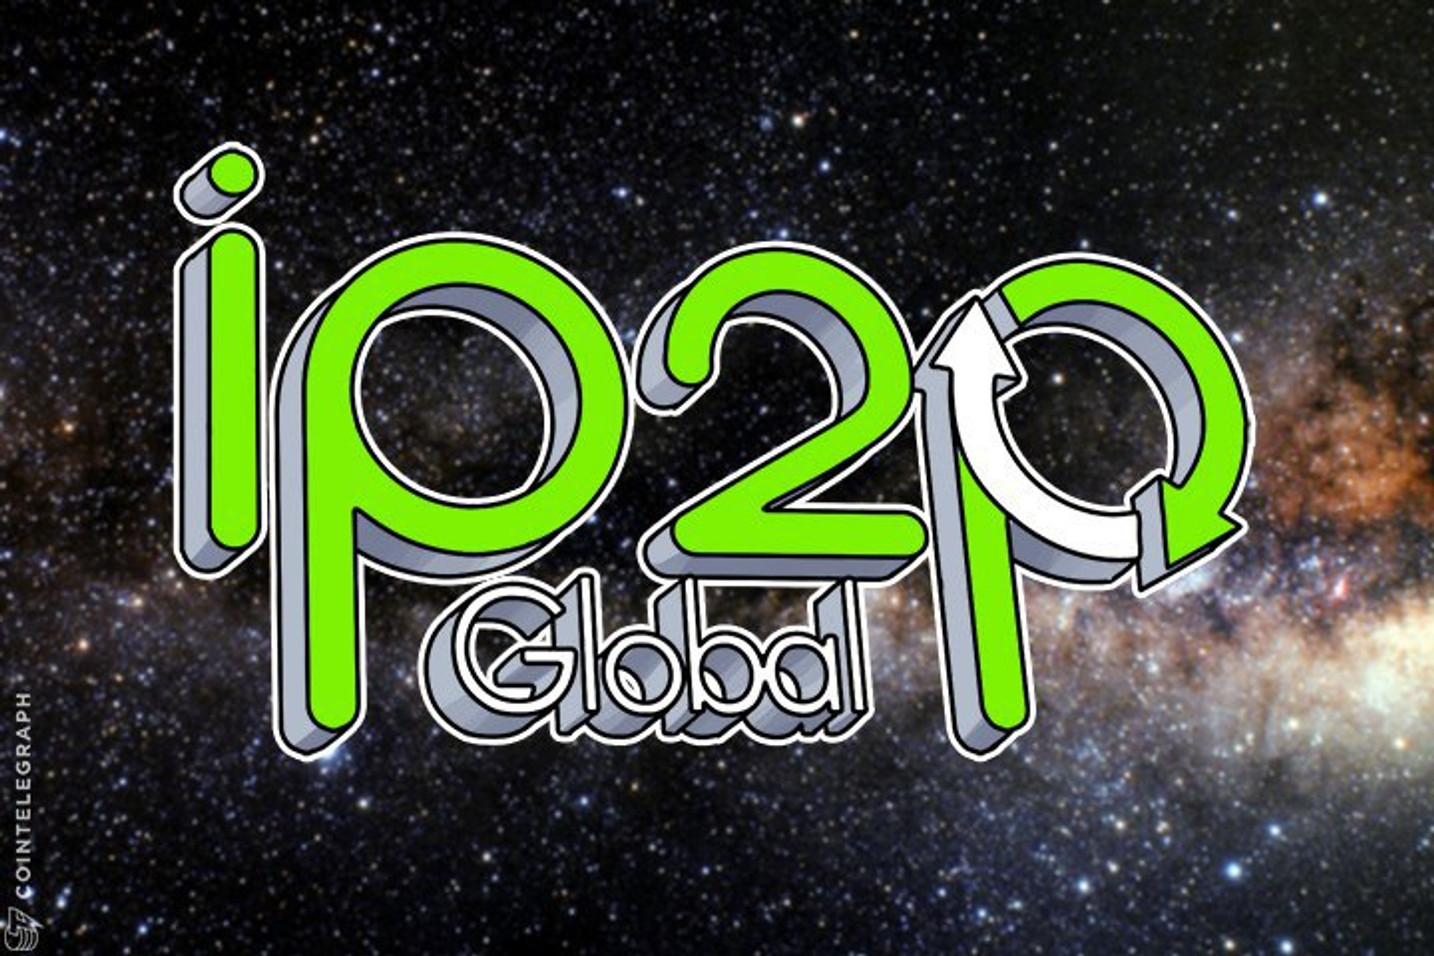 iP2PGlobal Announces Its Pre-ICO Crowdsales For Its TWQ Token On Feb 19